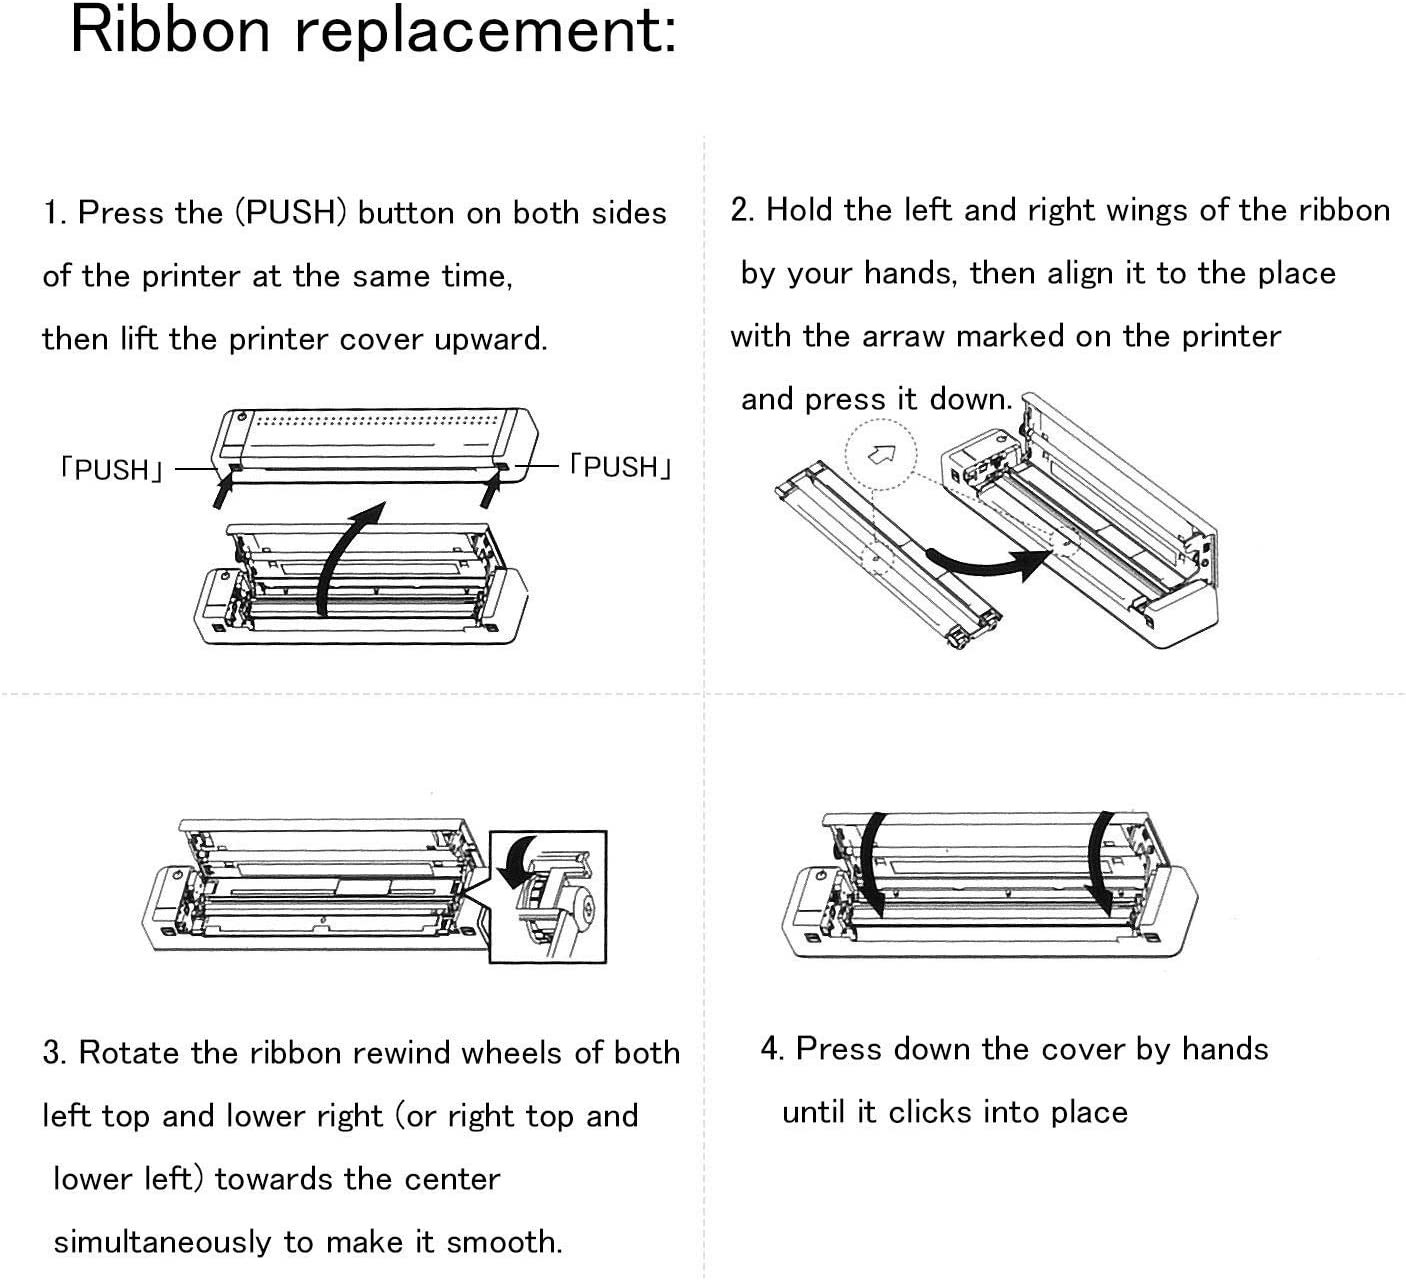 HPRT Thermal Transfer Ribbon Applied in MT800 (210mm) Portable Thermal Printer